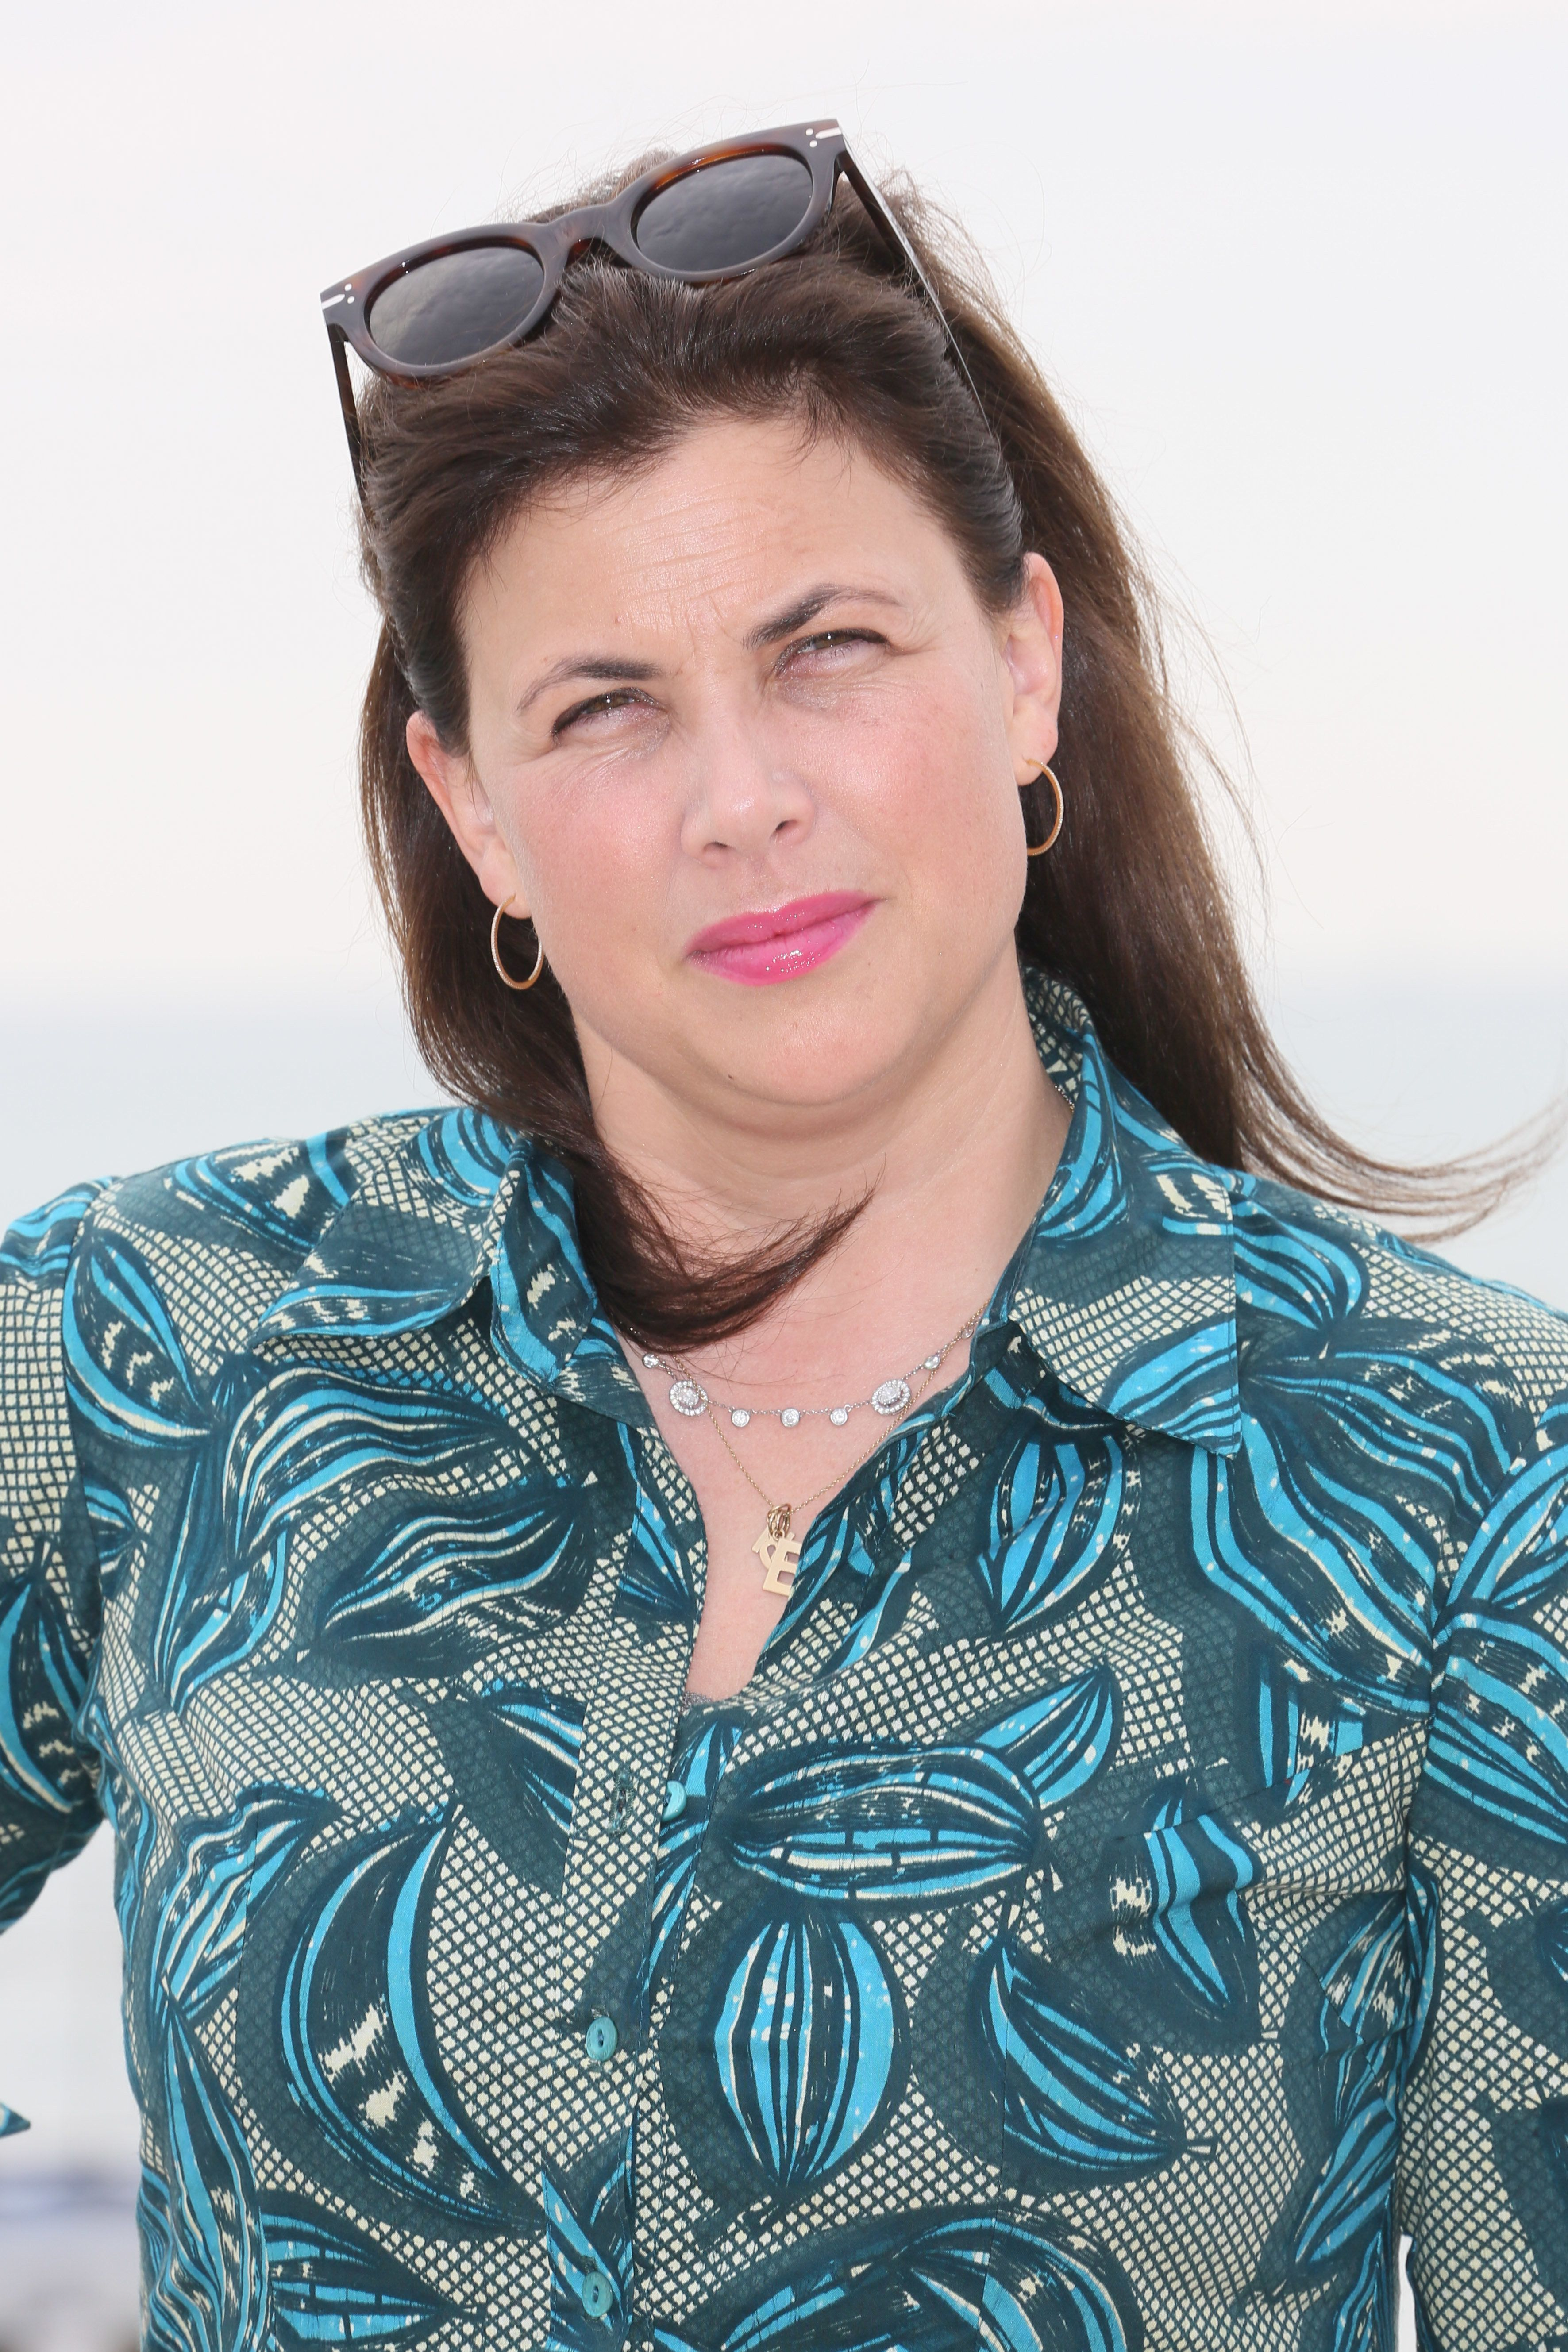 Kirstie Allsopp Creates Twitter Storm With 'Food-Shaming'